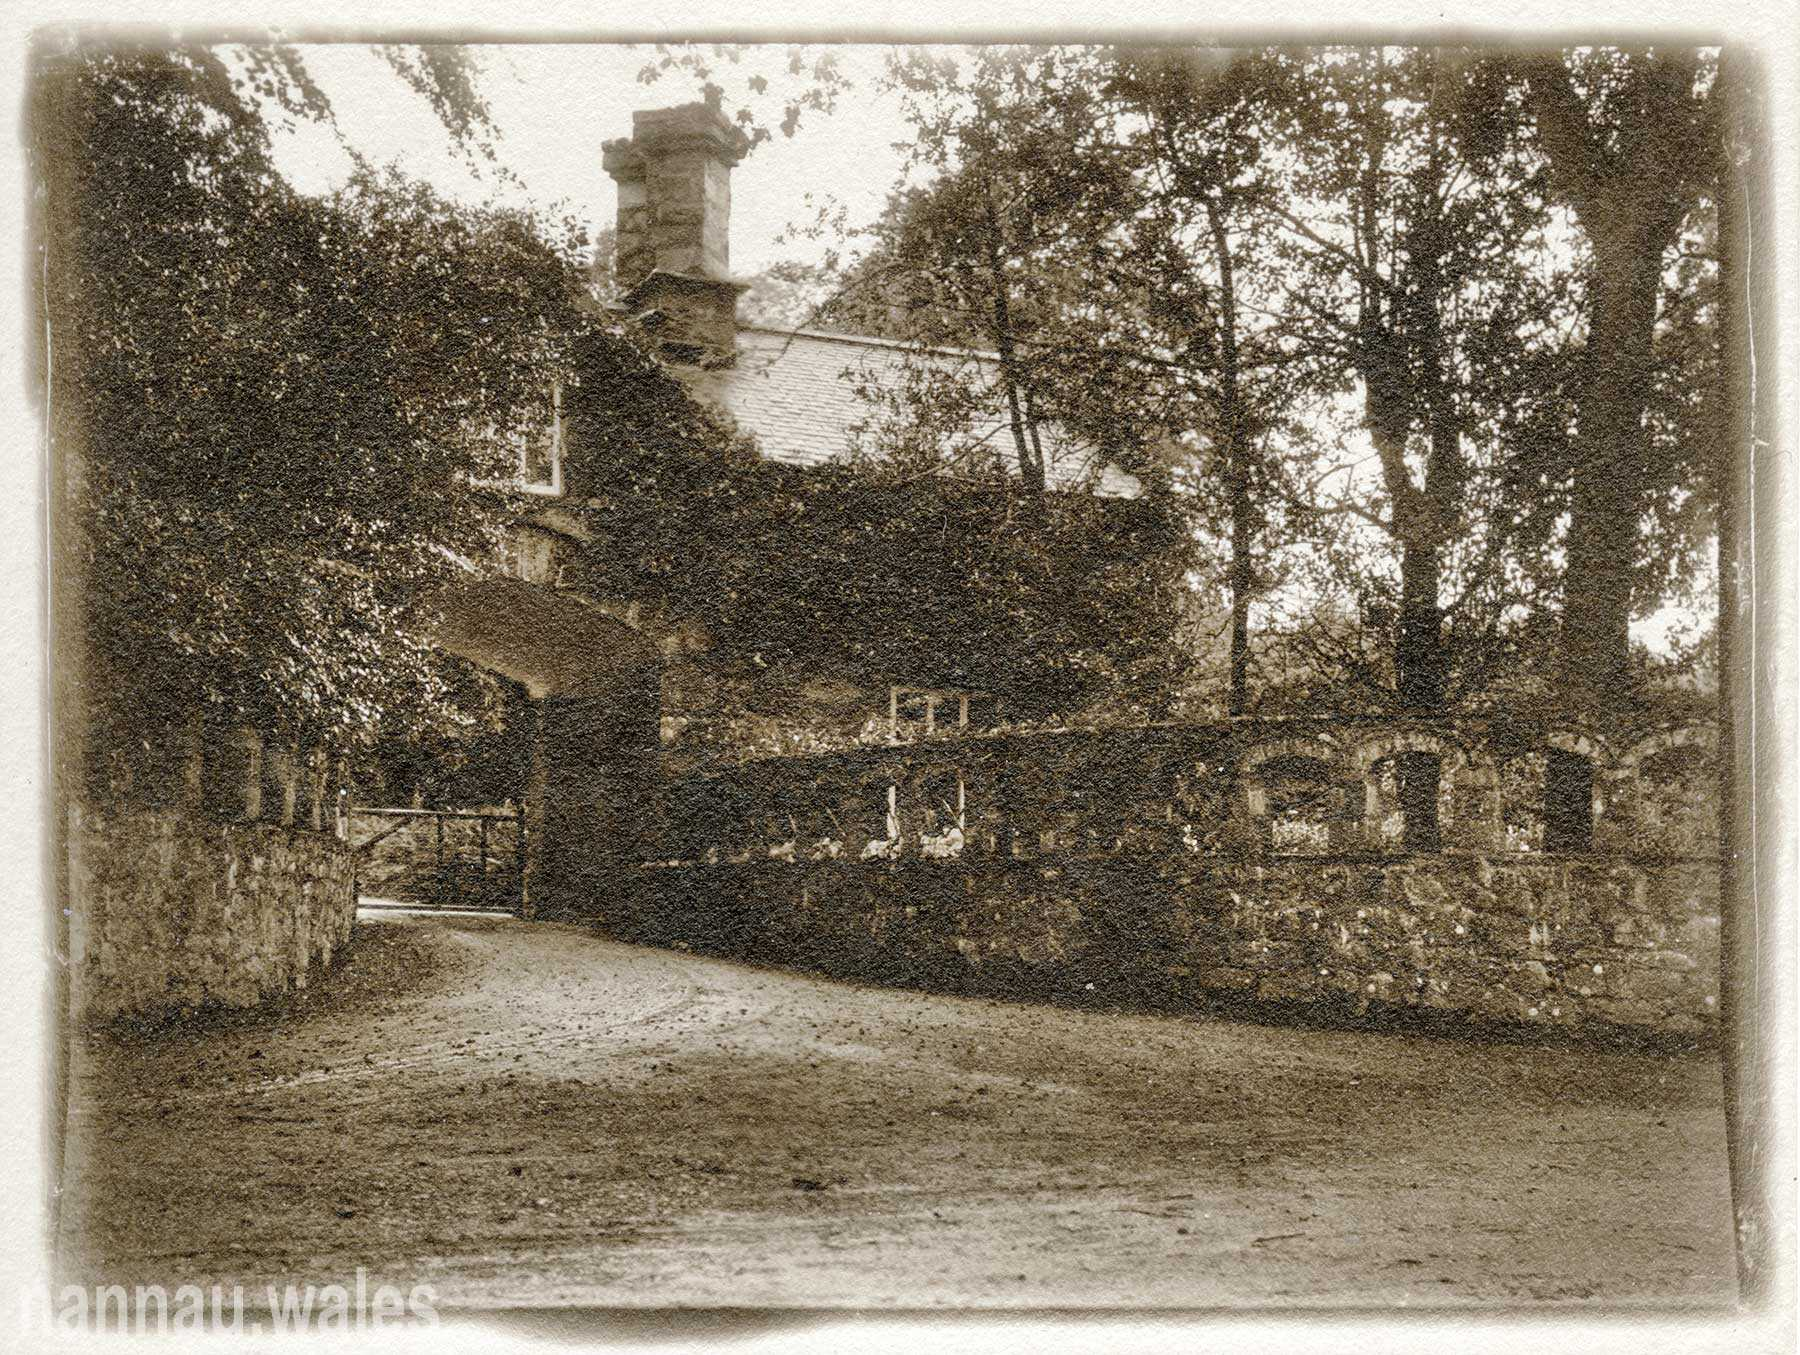 An original photograph of Coed y Moch Lodge from 1909.